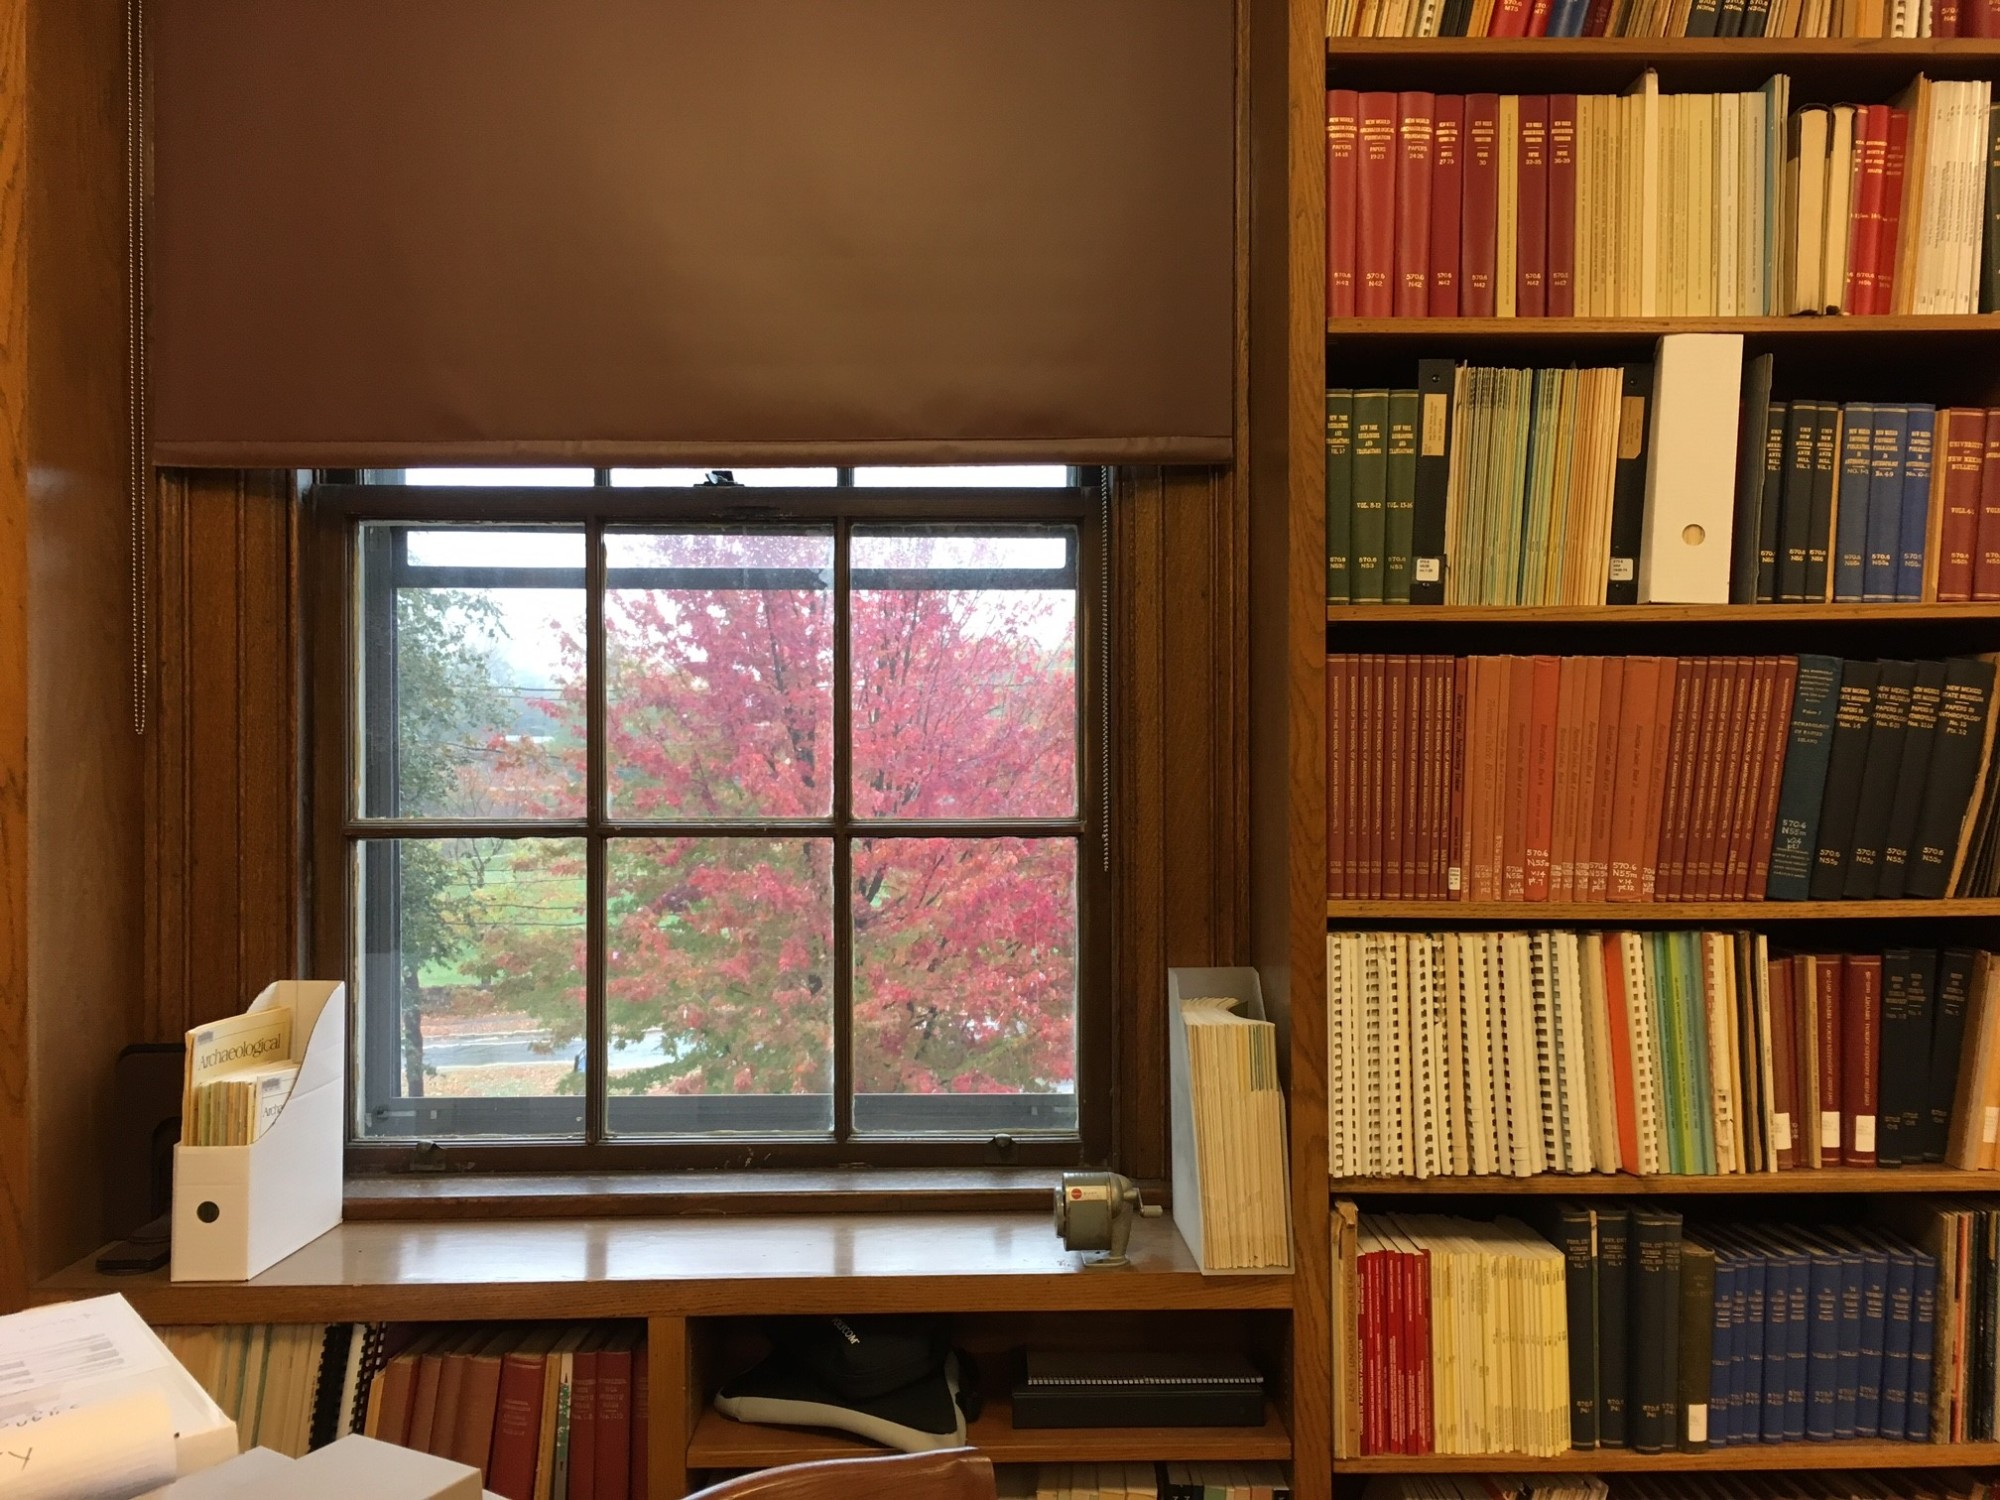 A color photograph of the Peabody's library and a window looking out onto a red-colored tree outside.